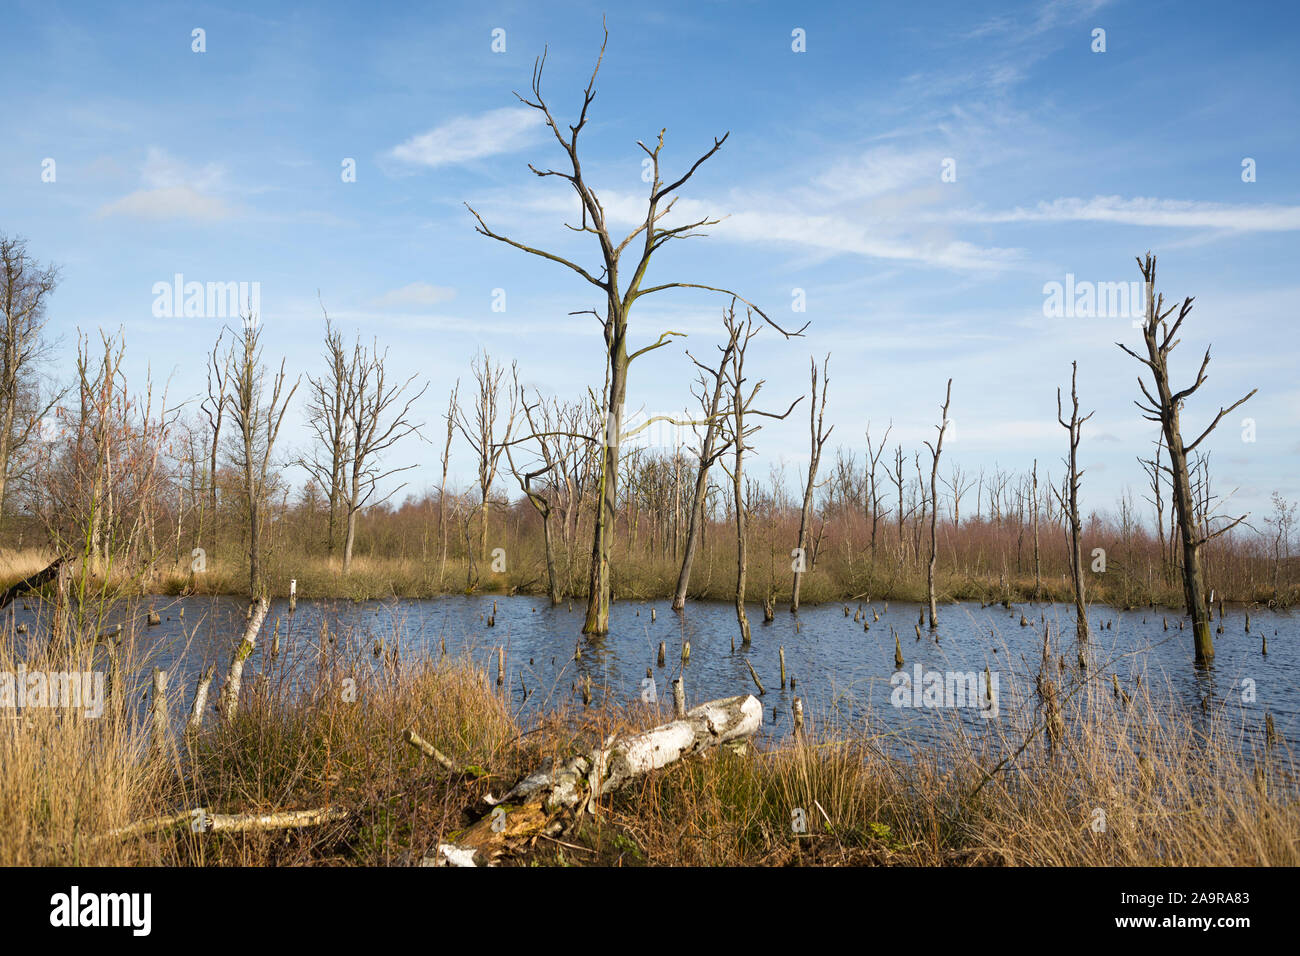 """Dead tree trunks at wetland nature reserve """"Mariapeel"""" with raised water level, nature being restored in the Netherlands Stock Photo"""